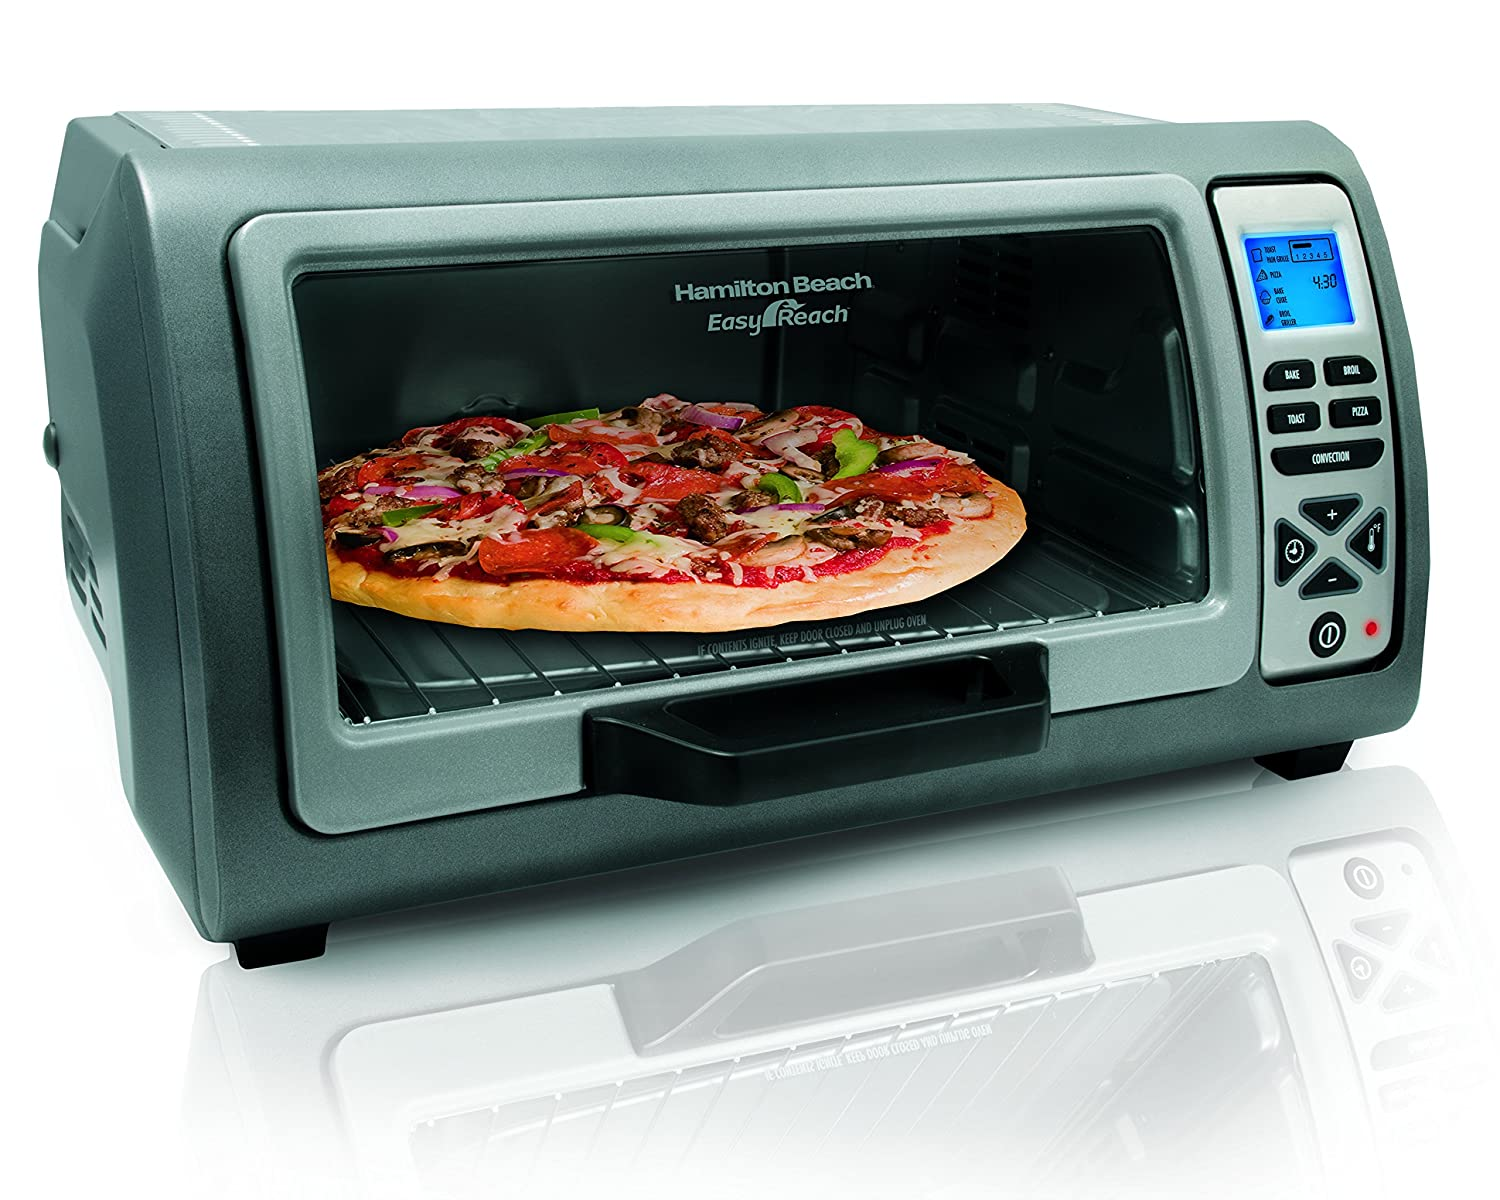 Hamilton Beach 31128 Easy Reach Toaster Oven with Roll-Top Door Stainless Steel